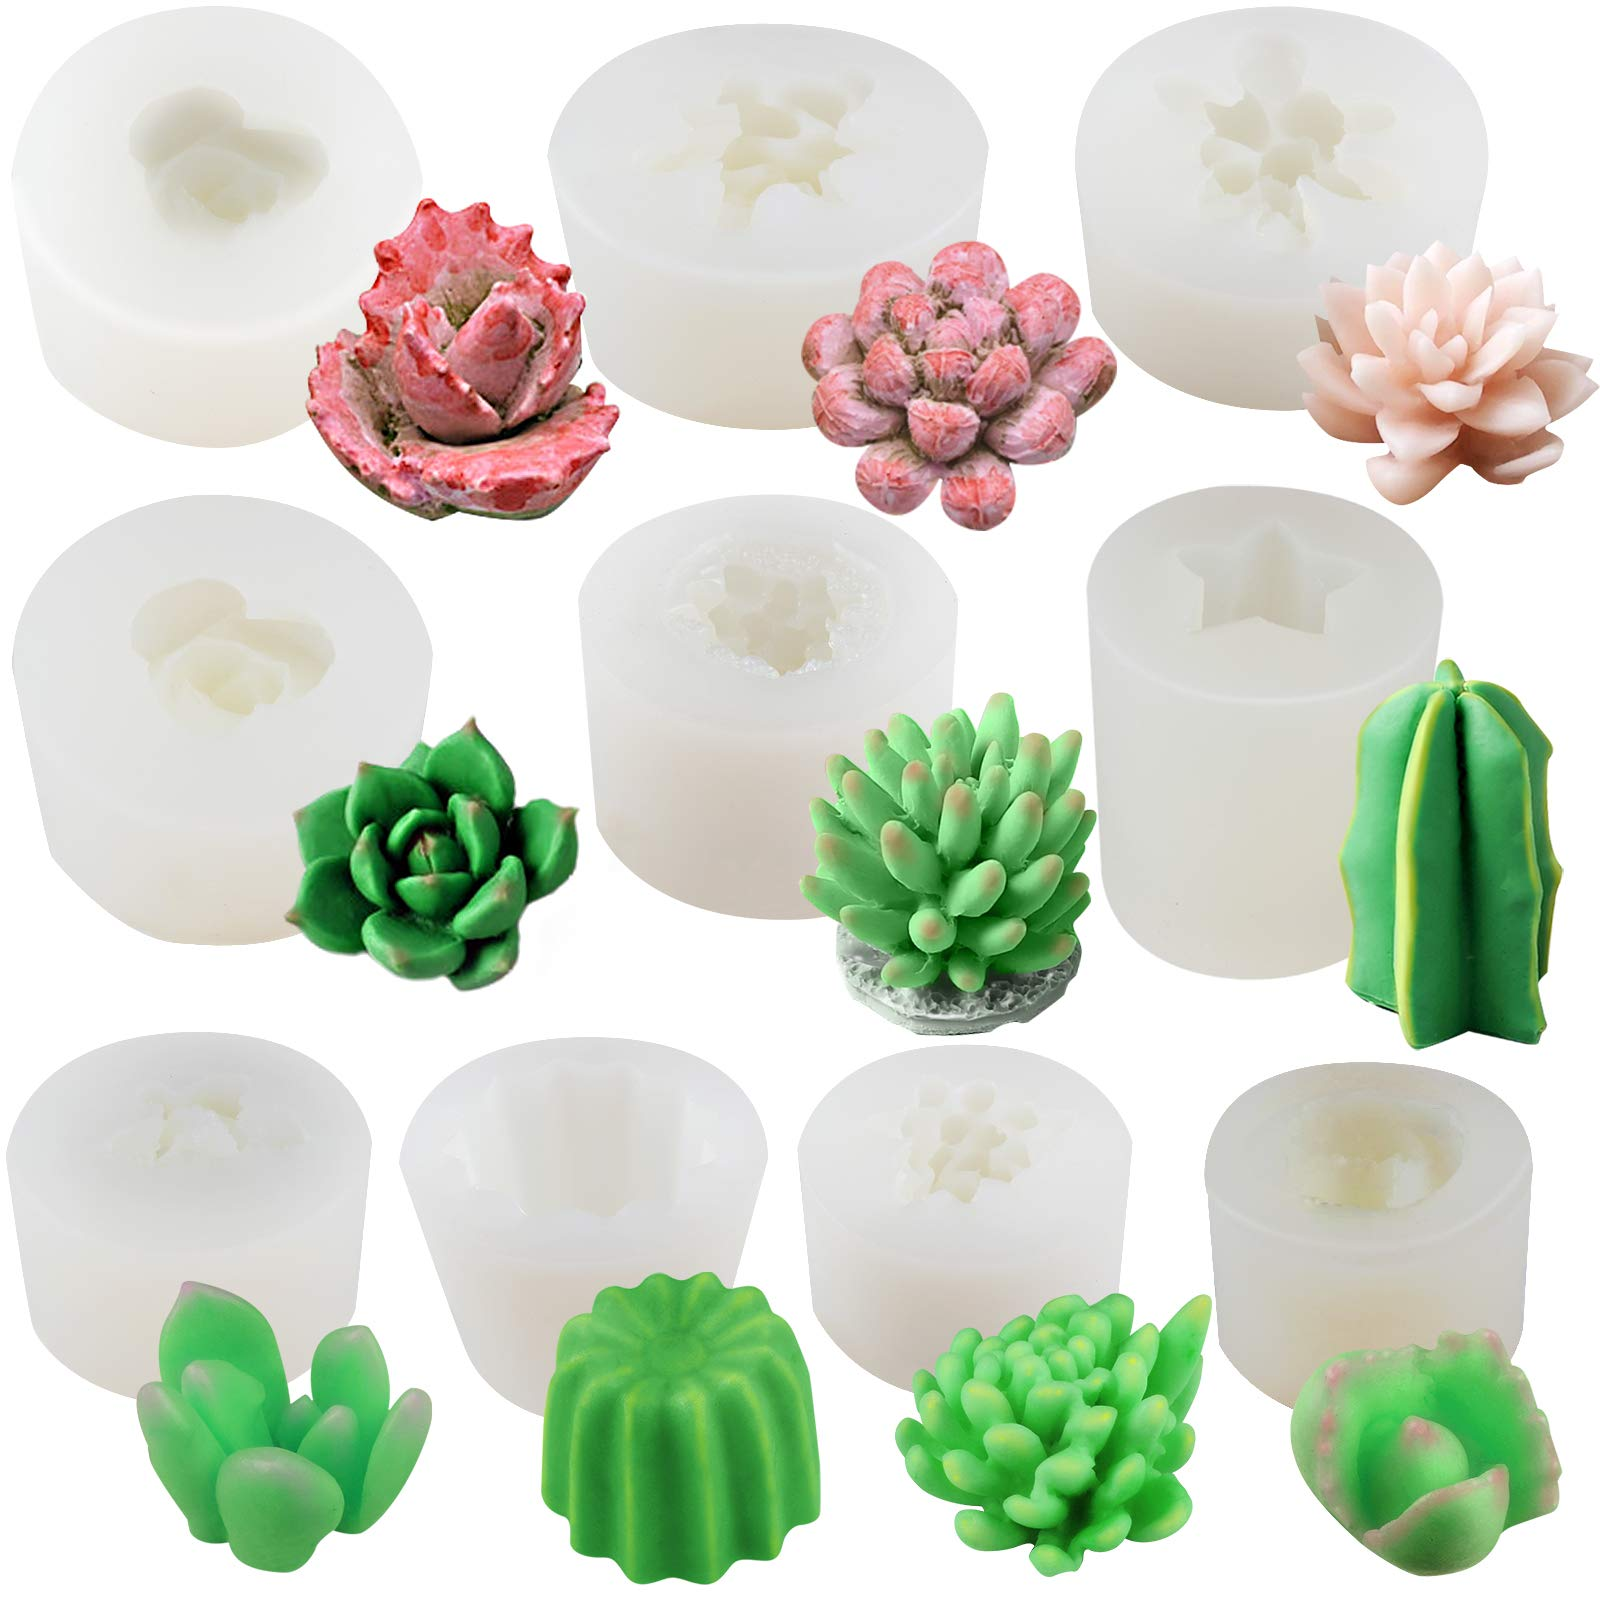 FUNSHOWCASE Cactus and Succulent Plant Silicone Molds Set of 10-Count for Epoxy Resin Soap Candle Wax Polymer Clay Concrete Plaster Fondant Cake Décor Chocolate Isomalt Larger